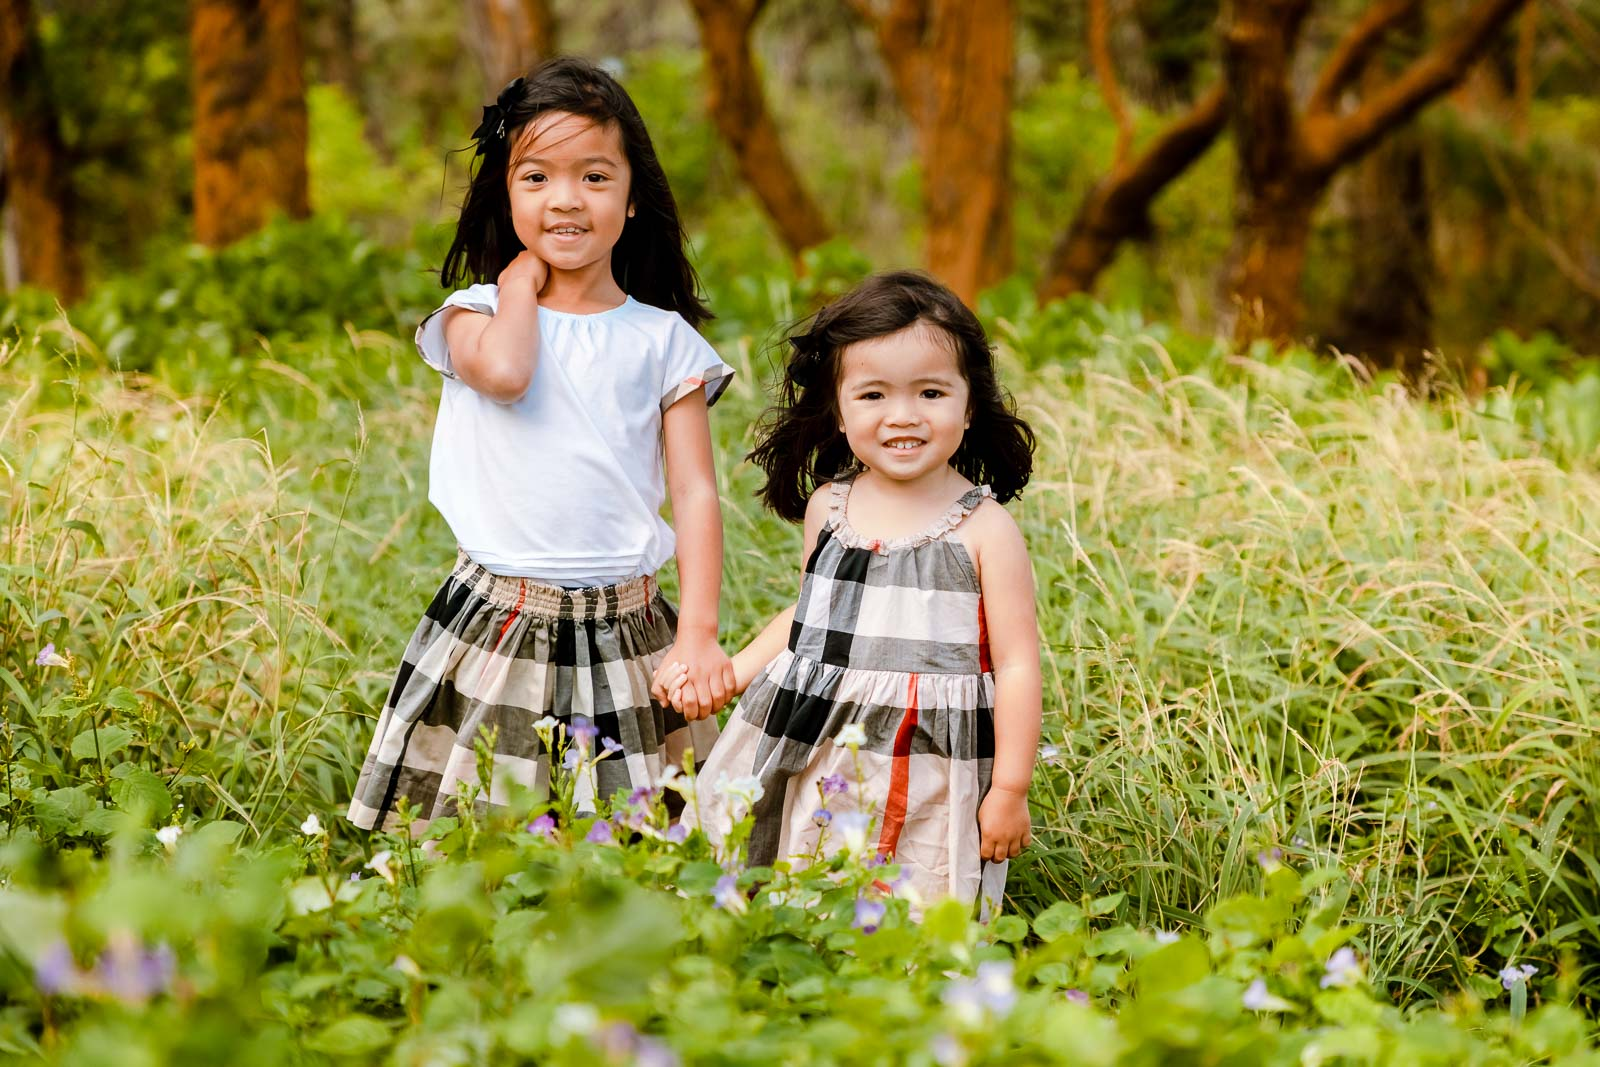 affordable family portrait photography oahu hawaii kids children forest flowers meadow